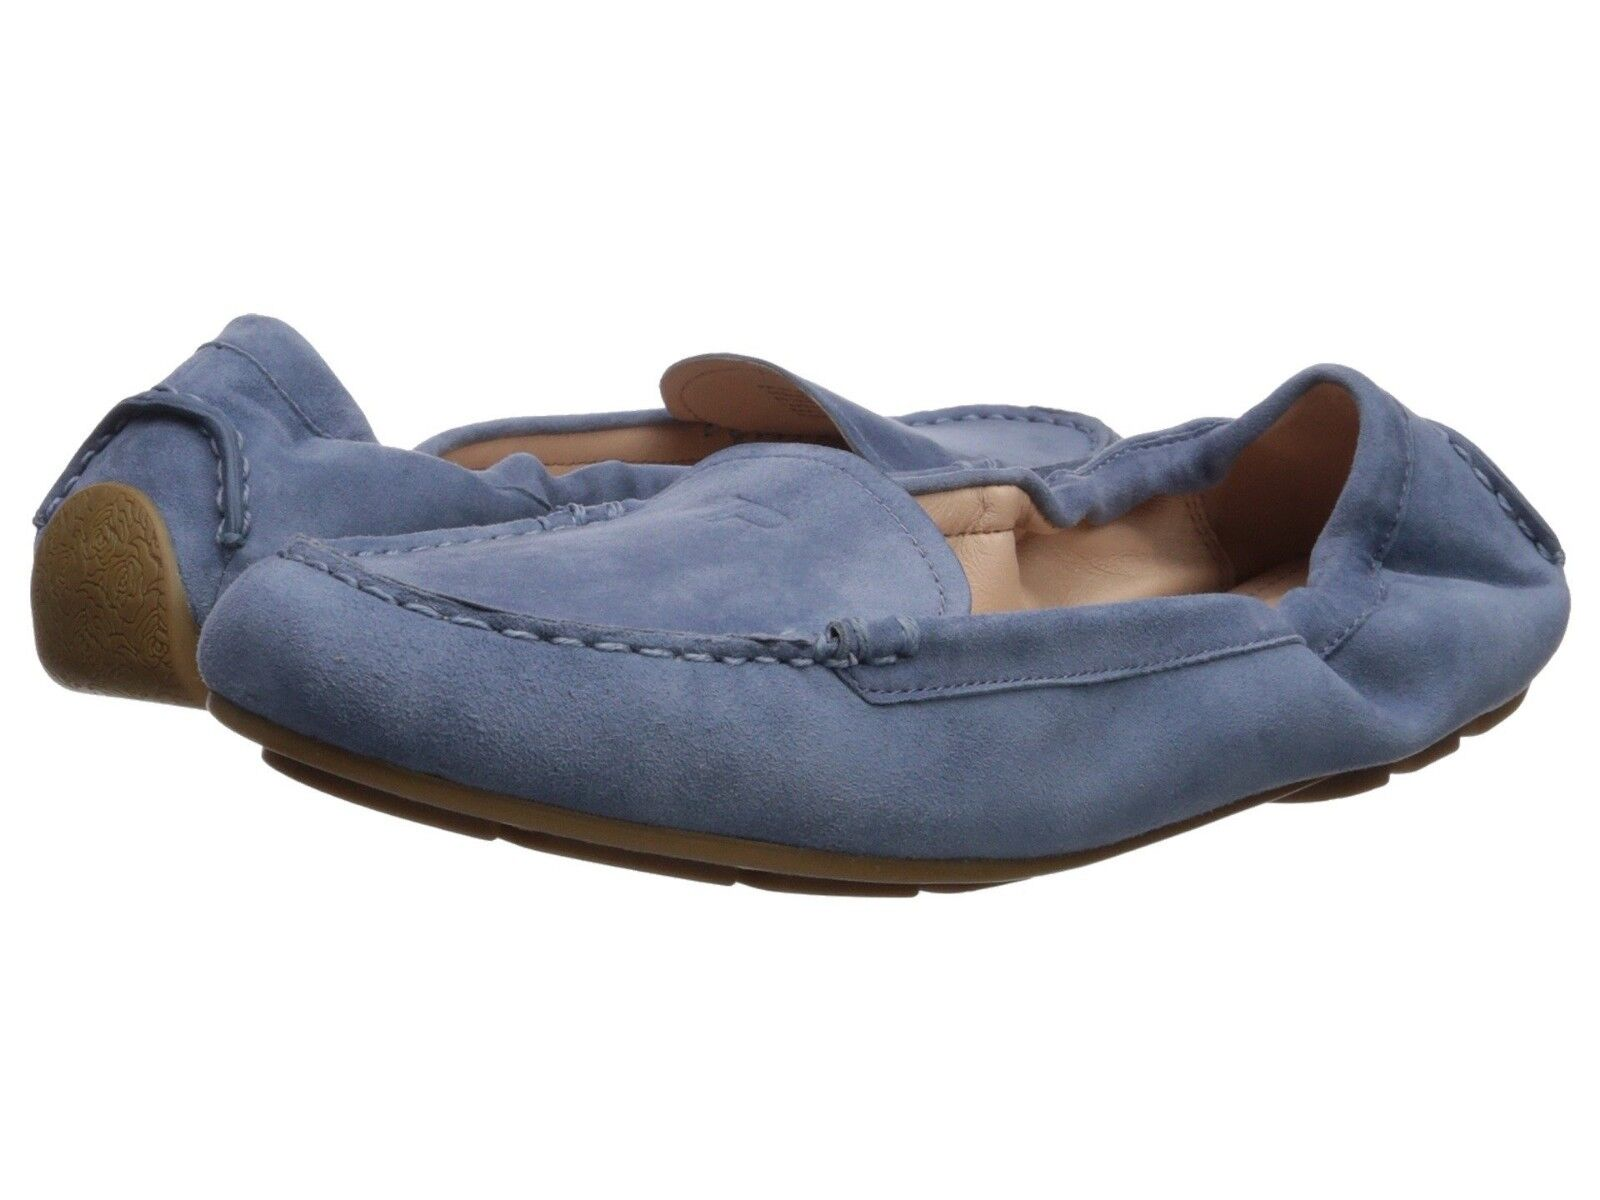 Taryn Rose Women's Kristine Silky Suede Denim Driving Moccasin Slip-On Shoes